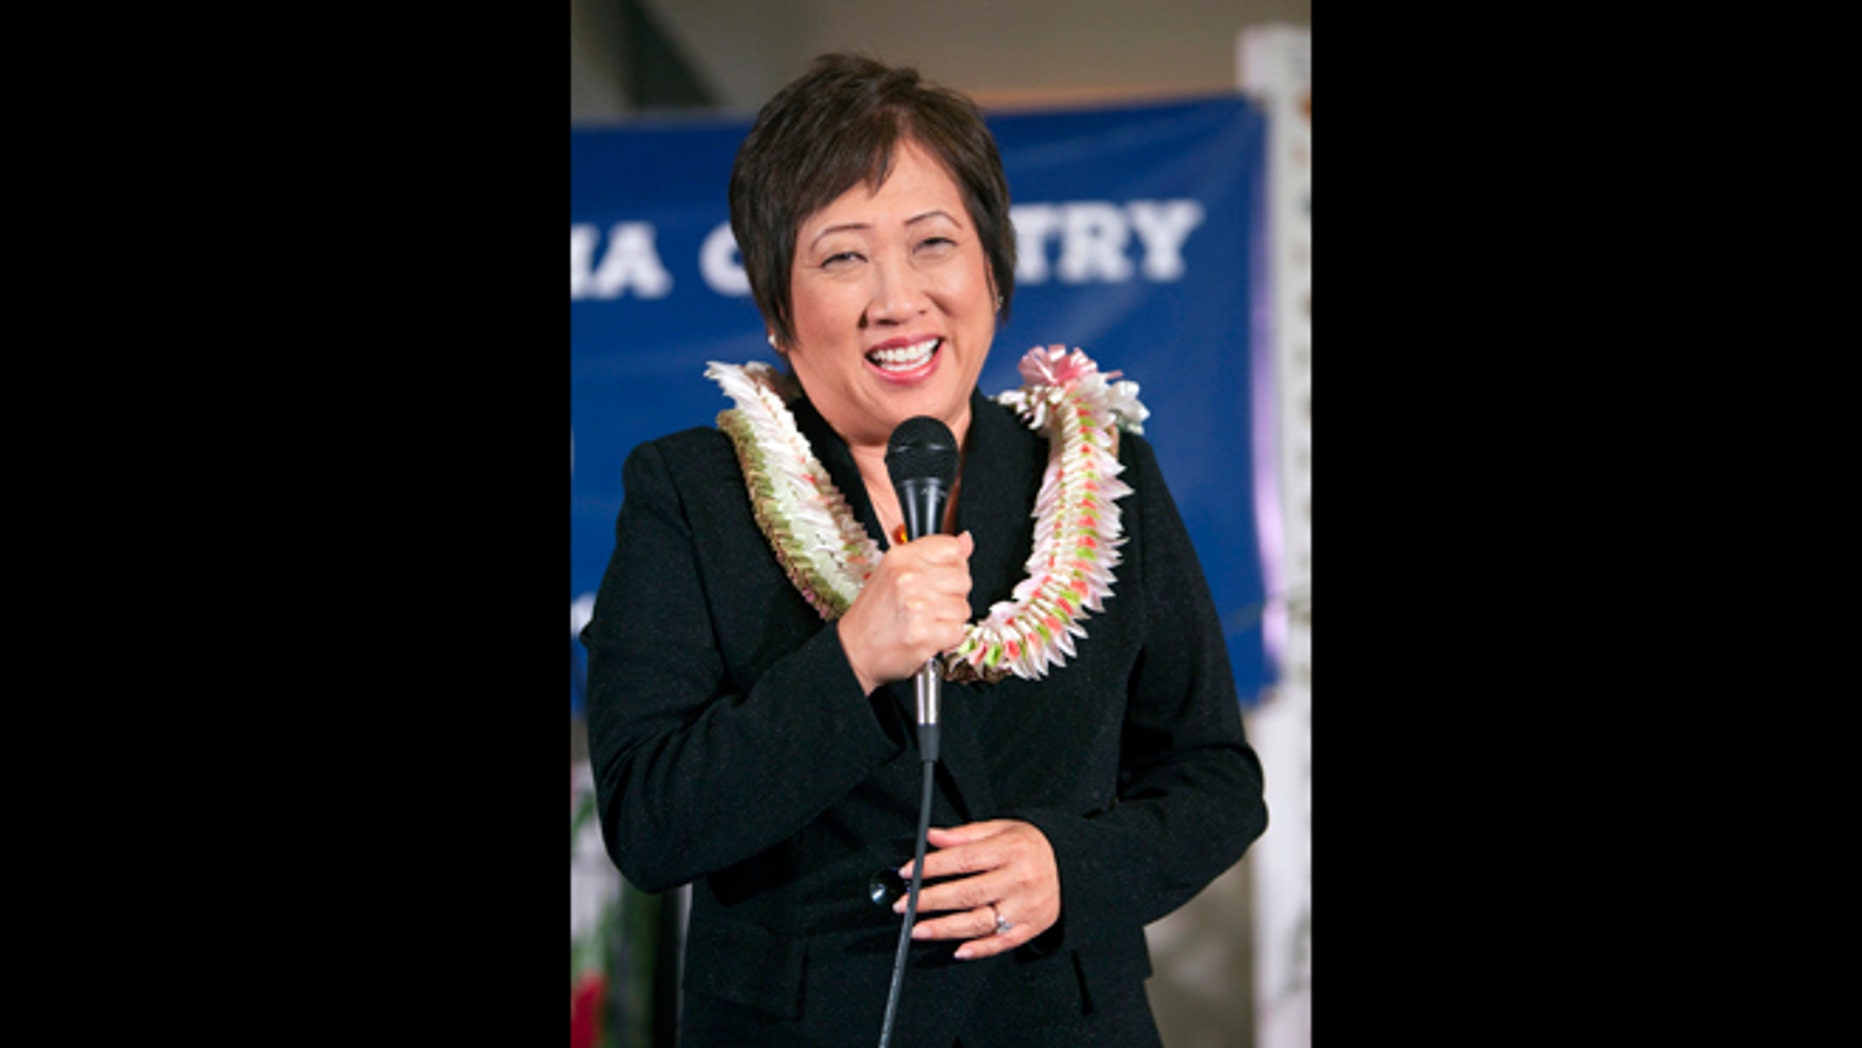 In this Nov. 6, 2012 file photo, Democrat Colleen Hanabusa speaks after winning Hawaii 1st Congressional district seat at the Japanese Cultural Center in Honolulu.